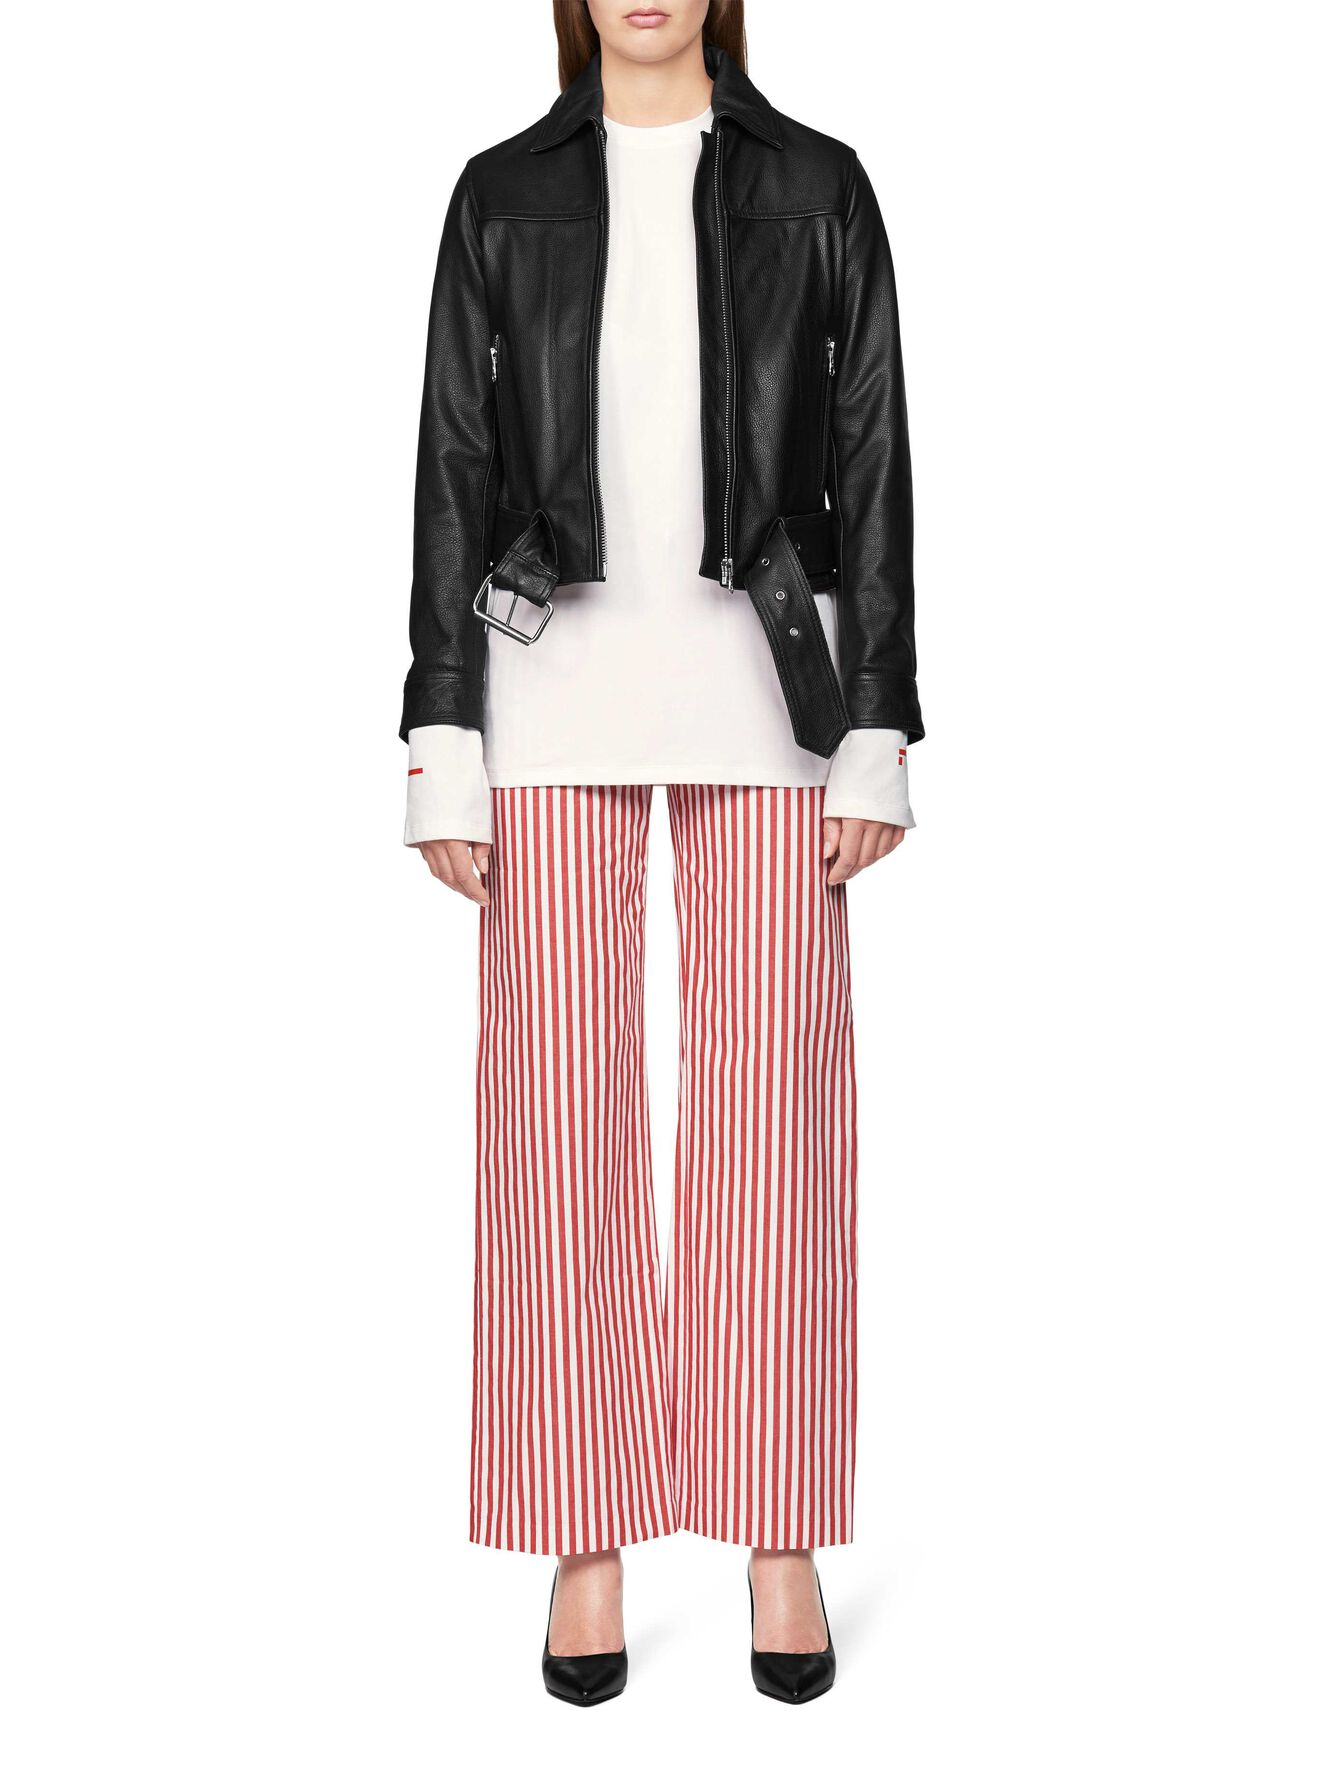 Scrilla Trousers in Valiant Poppy from Tiger of Sweden